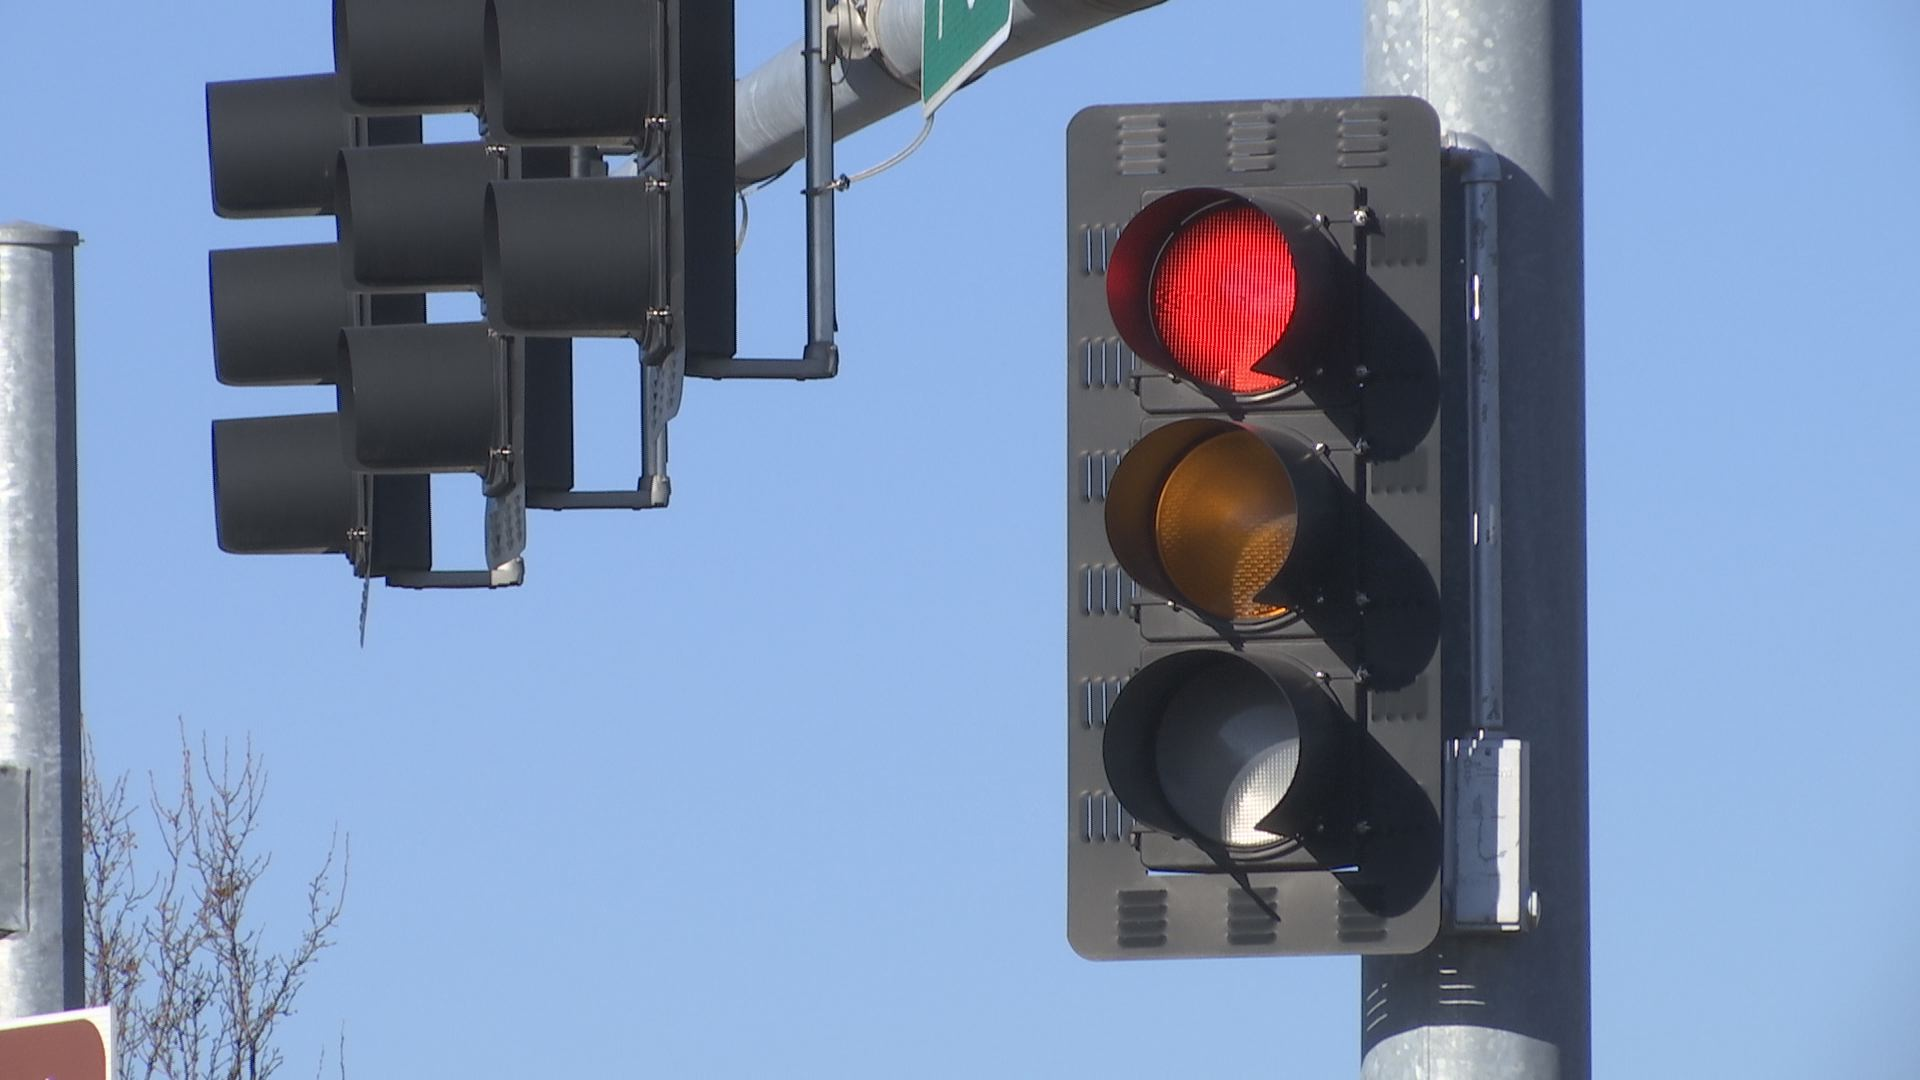 The City Of Grants Pass Is Working To Add Two Red Light Cameras In Busy  Intersections To Crack Down On Driving Laws.